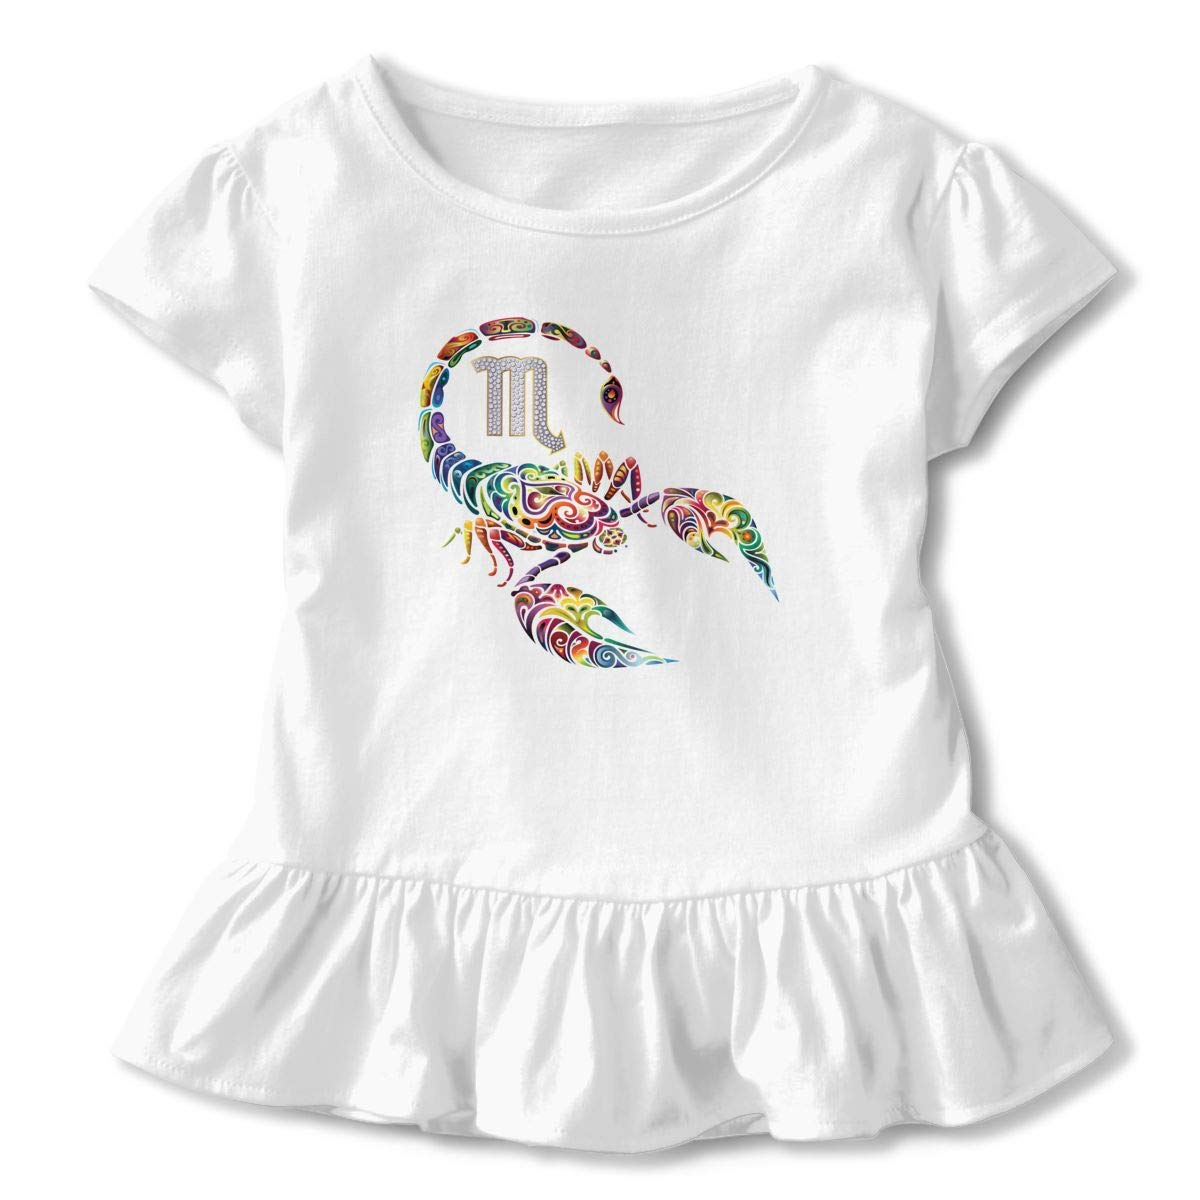 Cheng Jian Bo Psychedelic Camo Scorpio Toddler Girls T Shirt Kids Cotton Short Sleeve Ruffle Tee